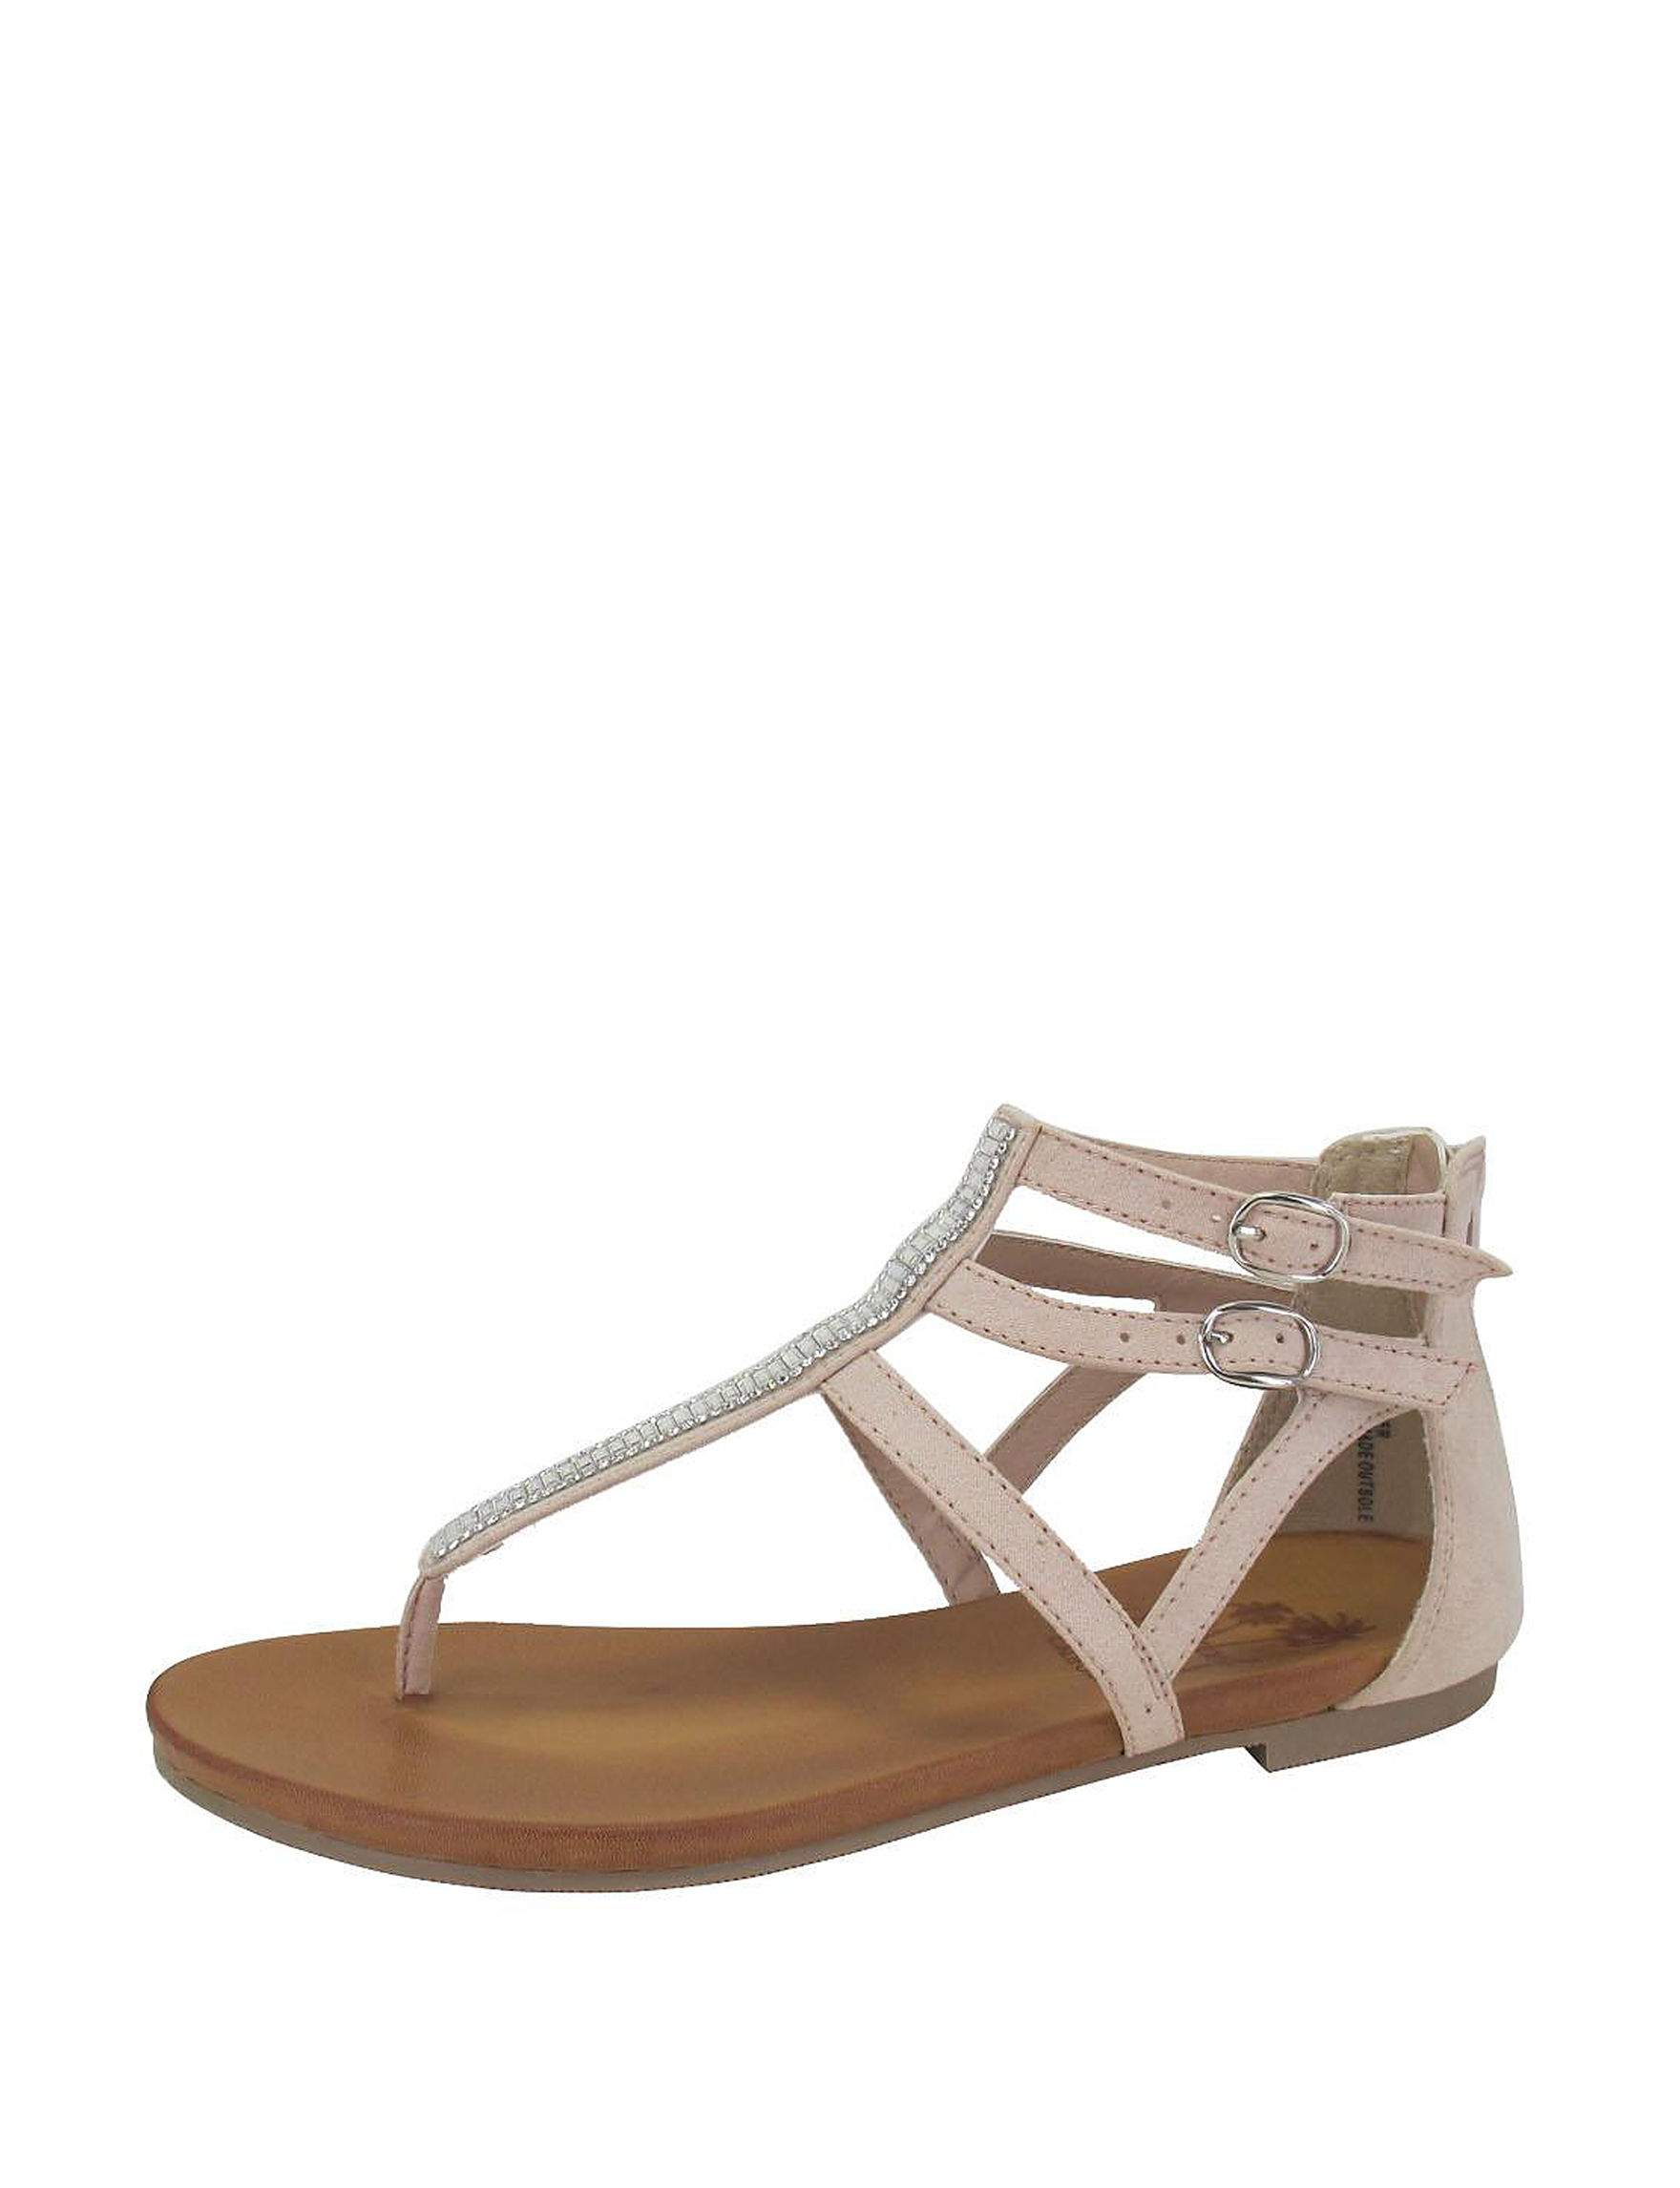 Jellypop Nude Flat Sandals Gladiators